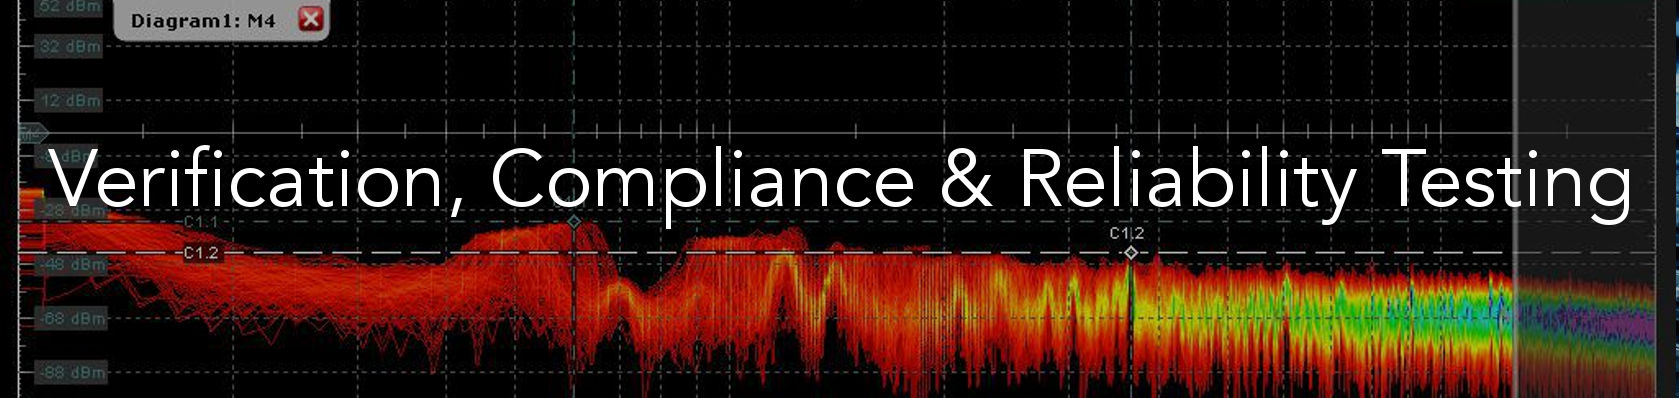 Verification, Compliance & Reliability Testing